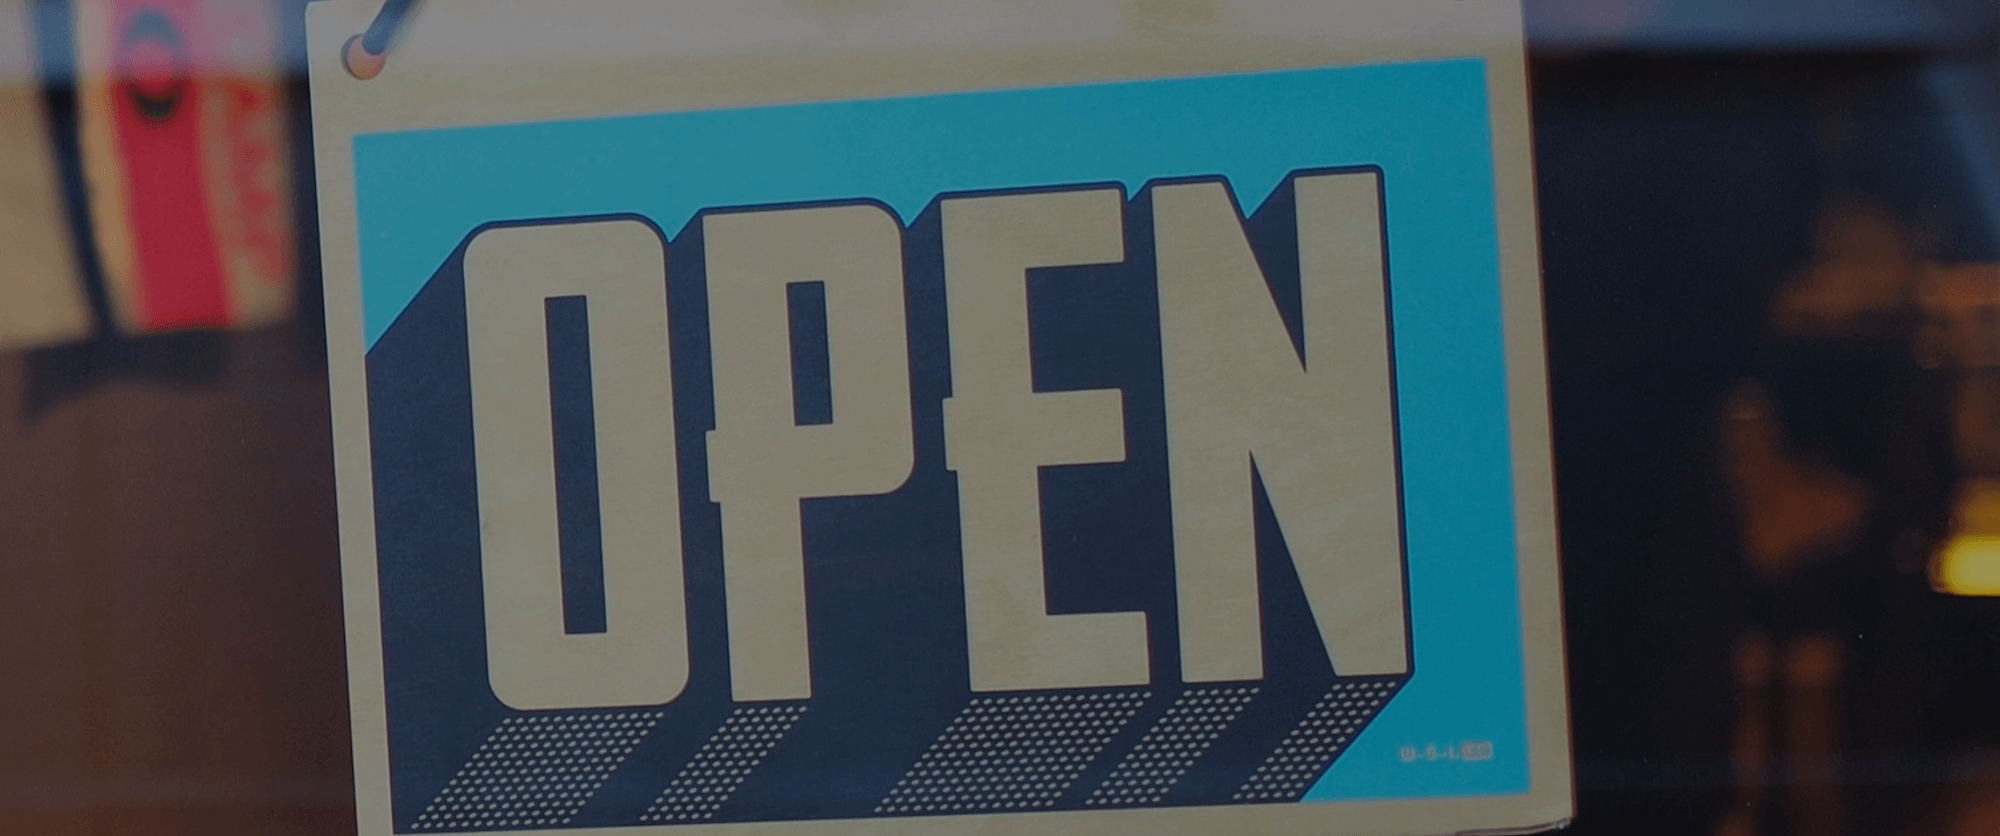 Banner showing open sign in shop window